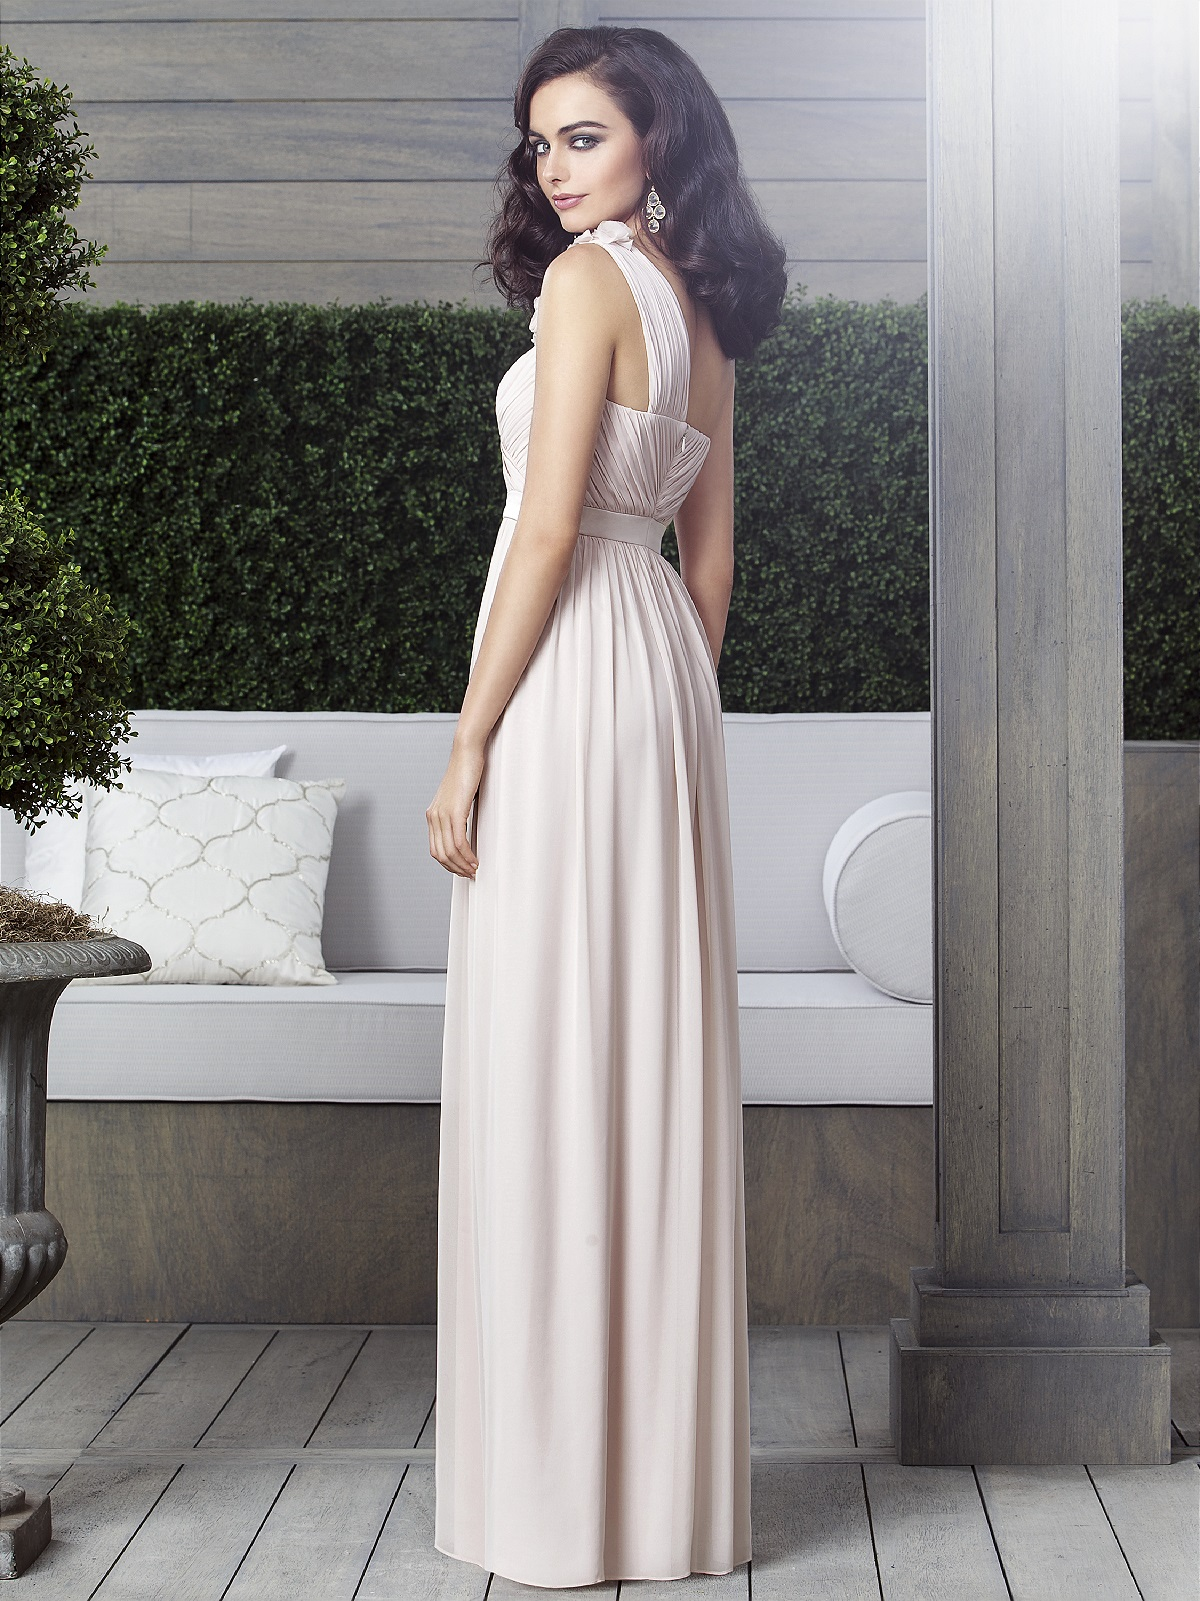 Dessy bridesmaid dressesdessy dresses 2909d2909the dessy group dessy bridesmaid dresses dessy 2909 ombrellifo Images